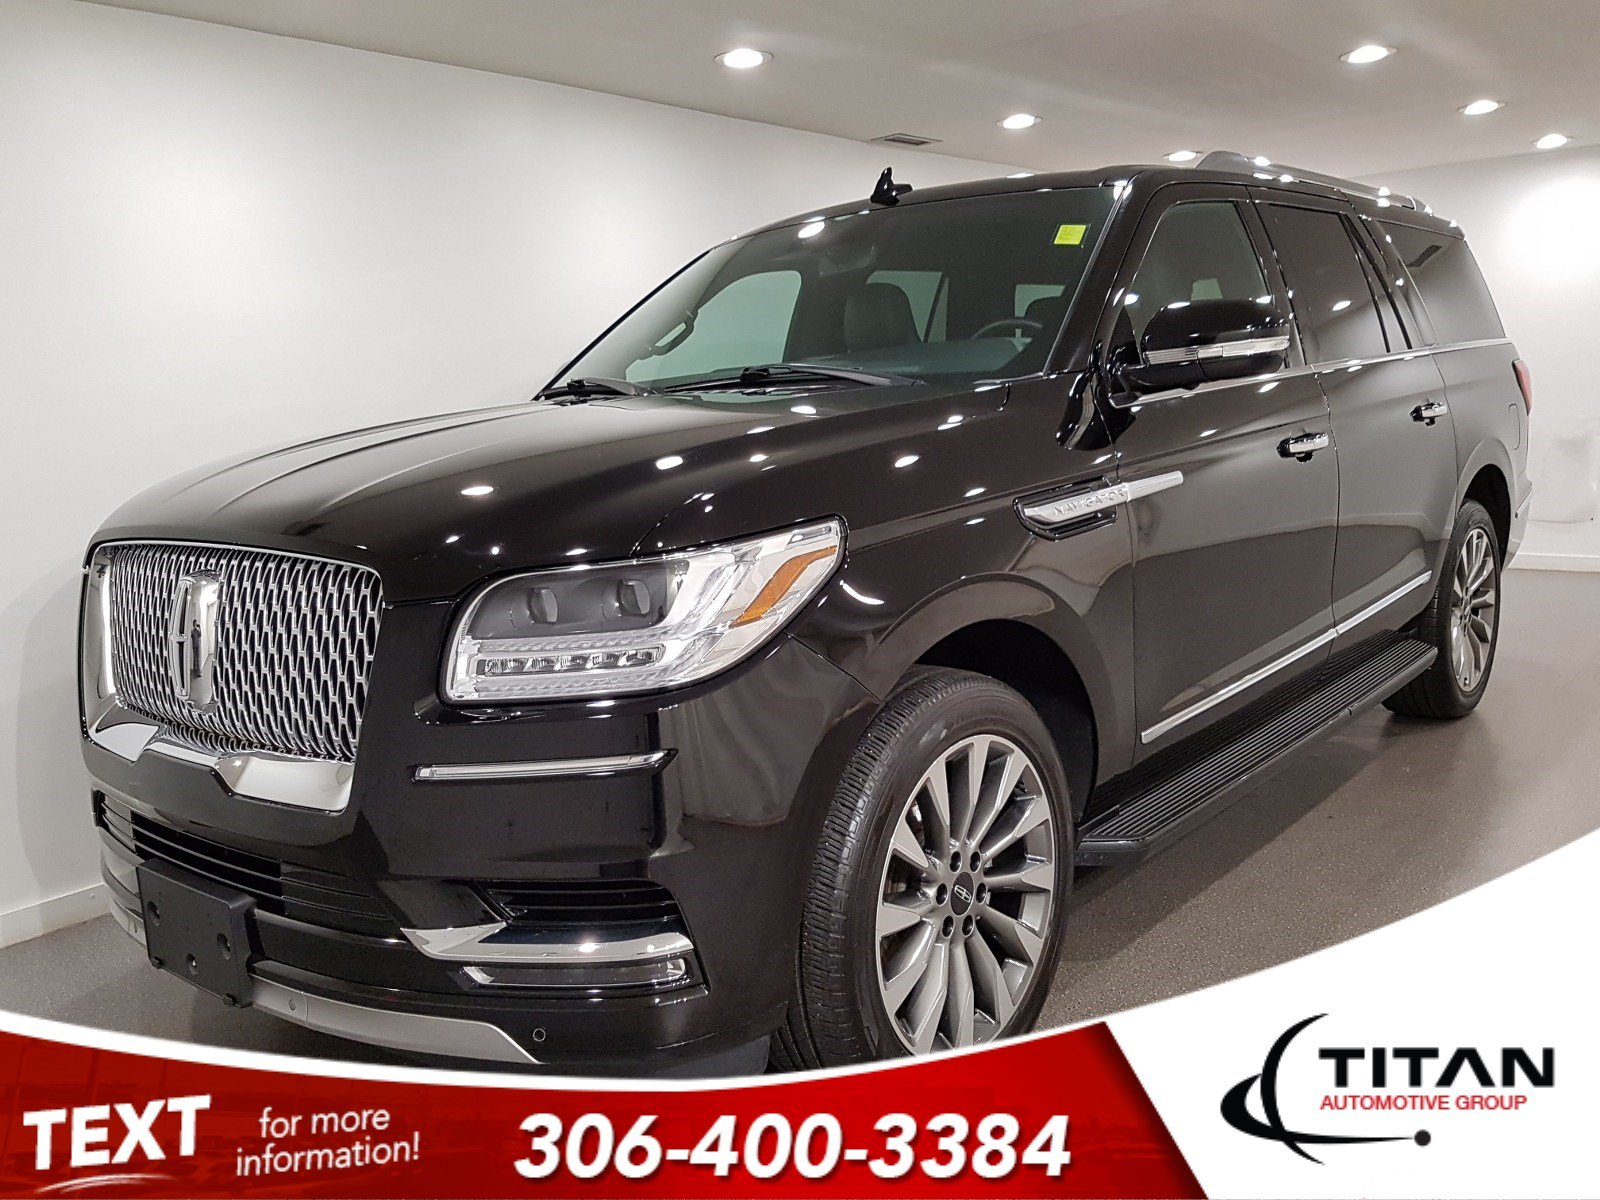 Pre-Owned 2018 Lincoln Navigator L Select 4x4 V6 CAM NAV Leather Alloys Sunroof